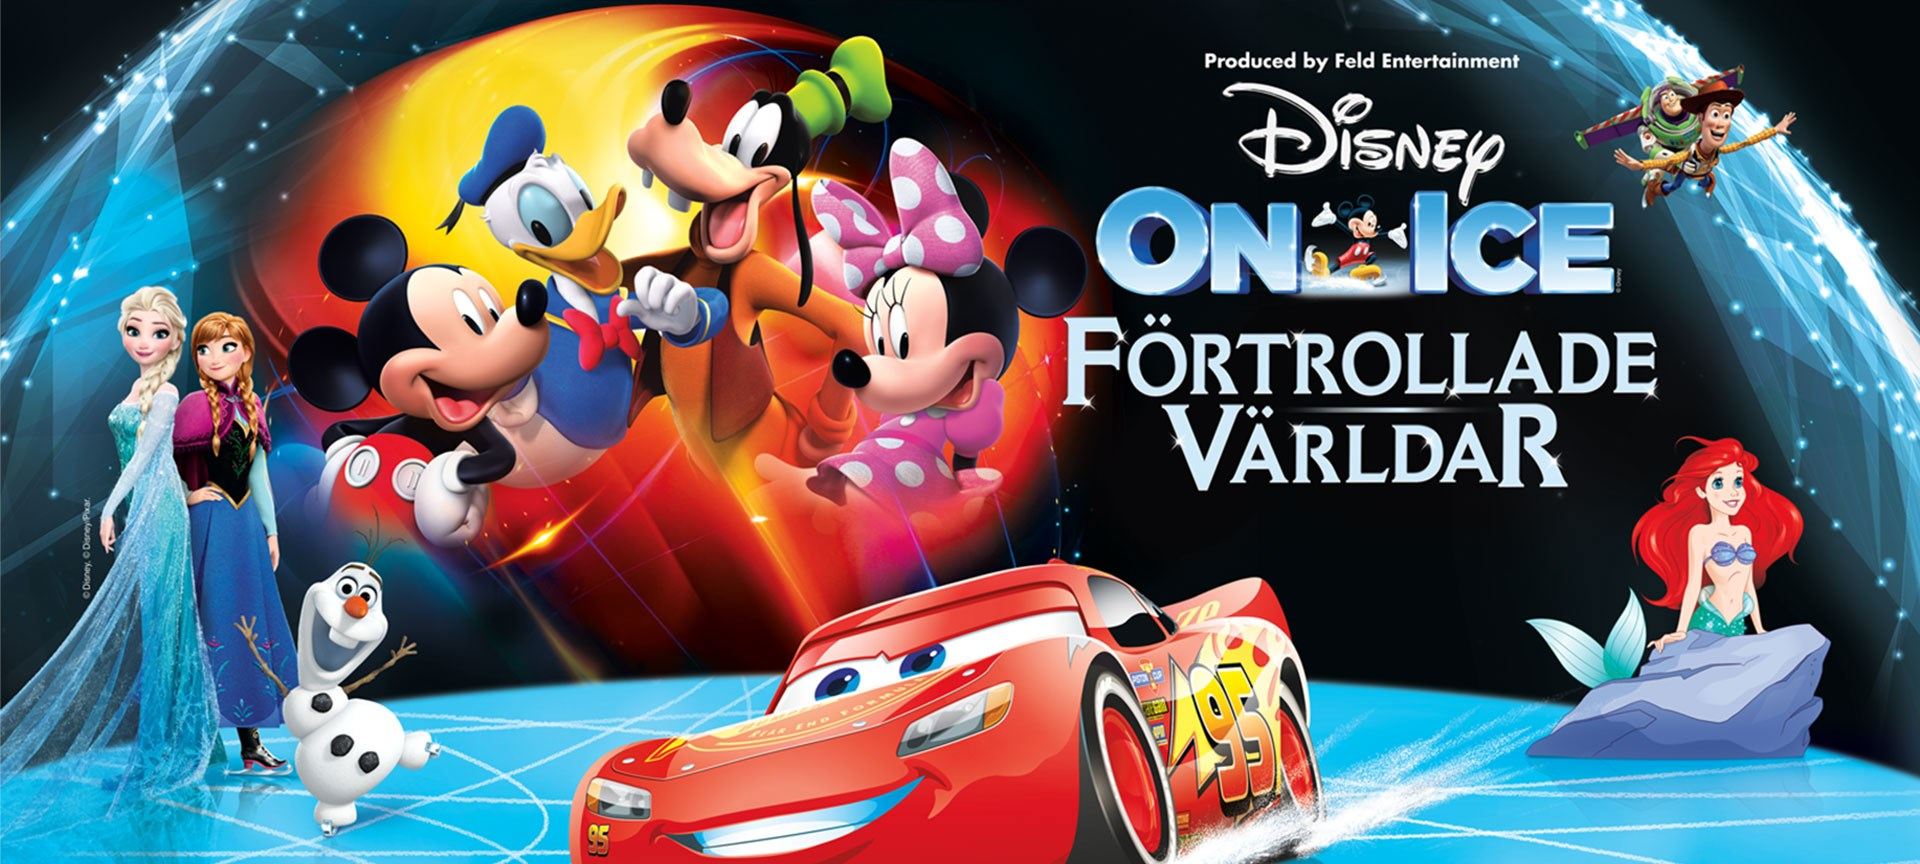 DISNEY ON ICE - Förtrollande Världar